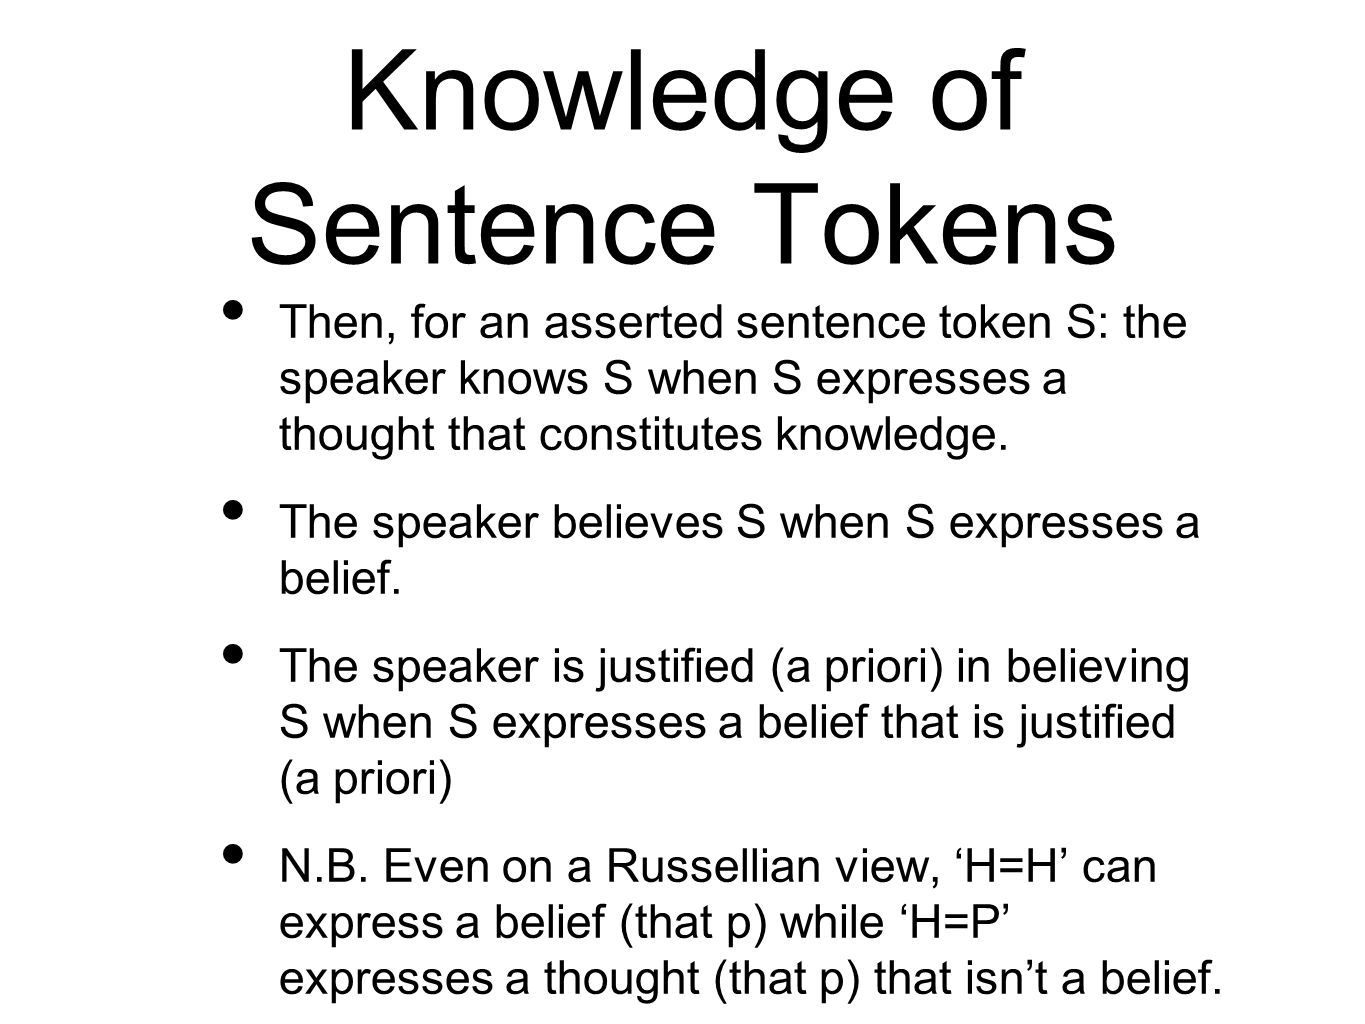 Knowledge of Sentence Tokens Then, for an asserted sentence token S: the speaker knows S when S expresses a thought that constitutes knowledge.